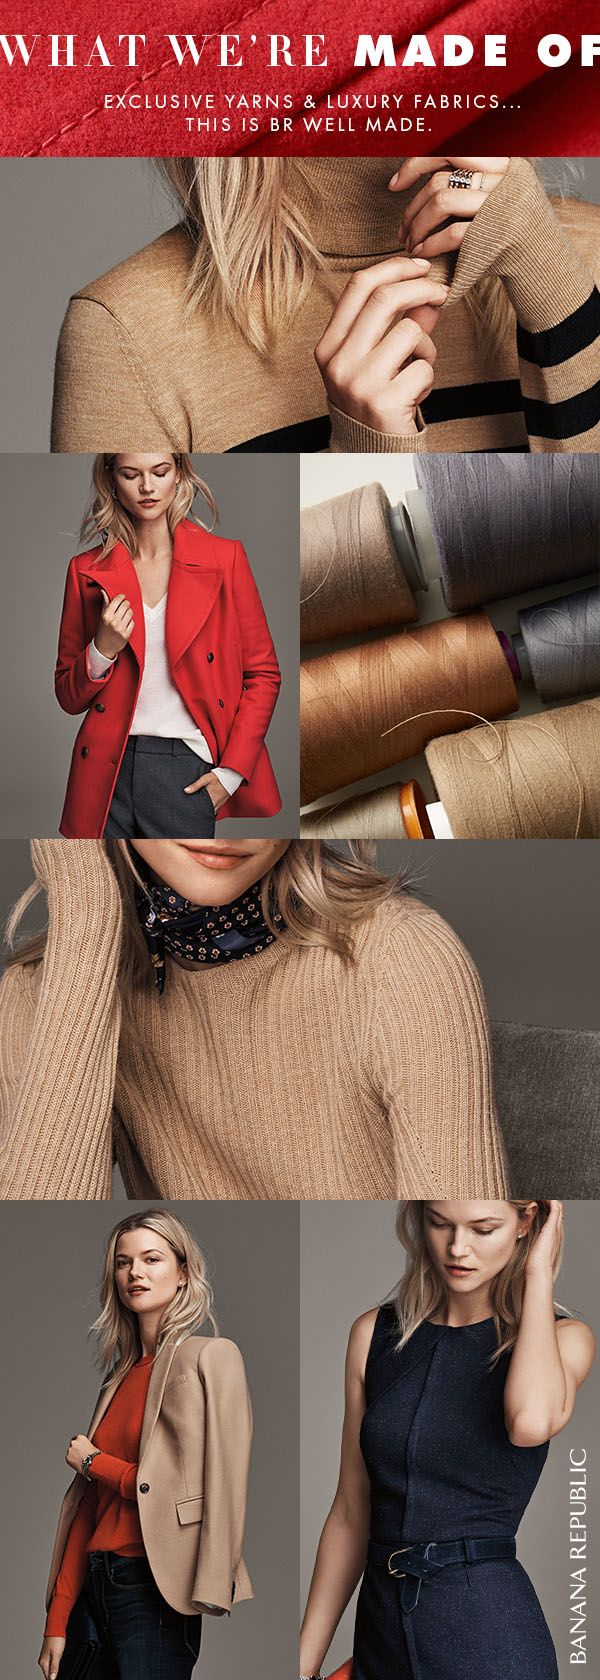 Good looks aren't everything-it's what's on the inside that counts. Discover exclusive Italian yarns and luxurious fabrics in our BR Well Made collection. These are timeless styles to covet, crafted to stand the test of time.